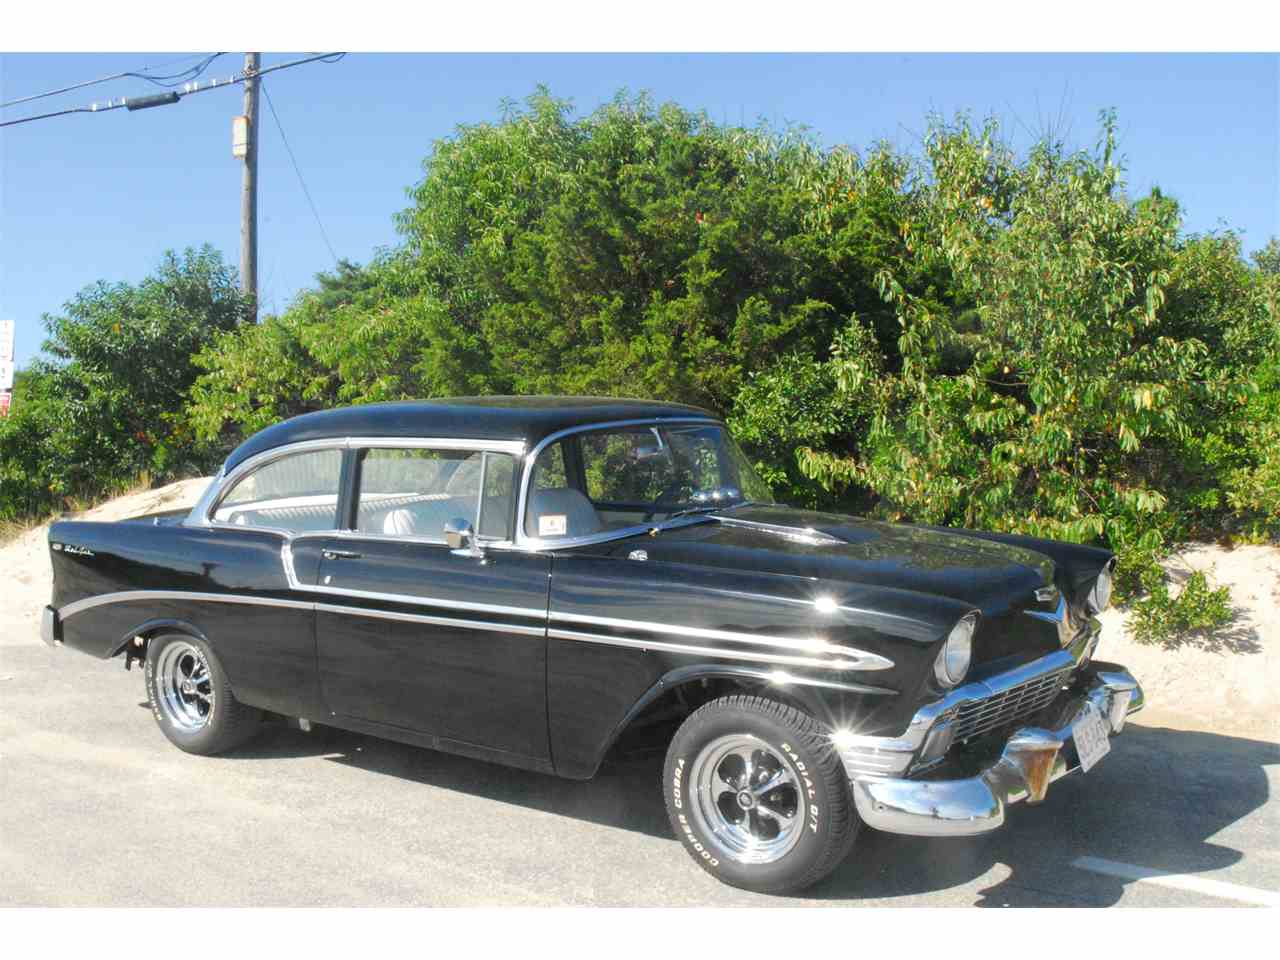 1956 chevrolet bel air for sale classic car liquidators - 1956 Chevrolet Bel Air For Sale Cc 898550